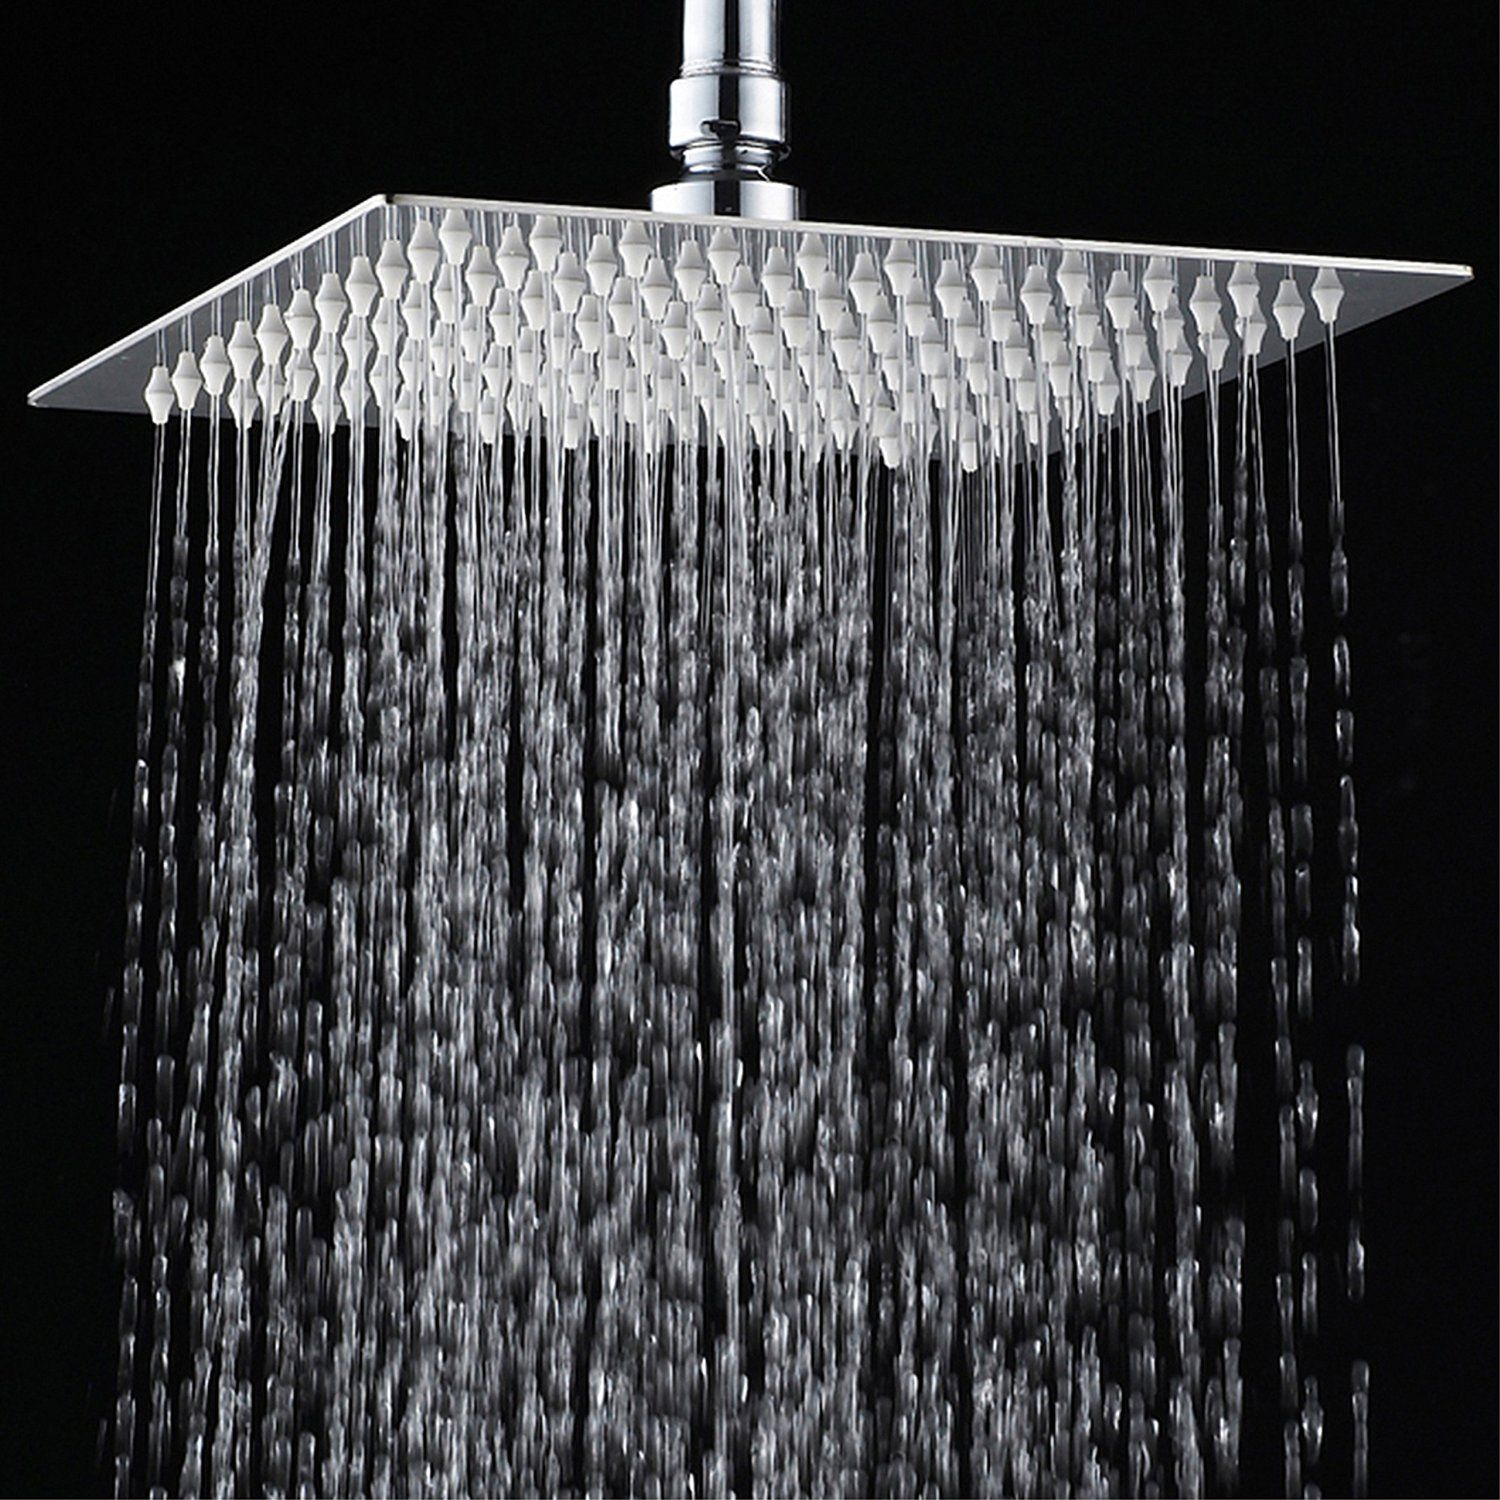 Yawall Rainfall Shower Head 12 Ultra Thin Stainless Steel High